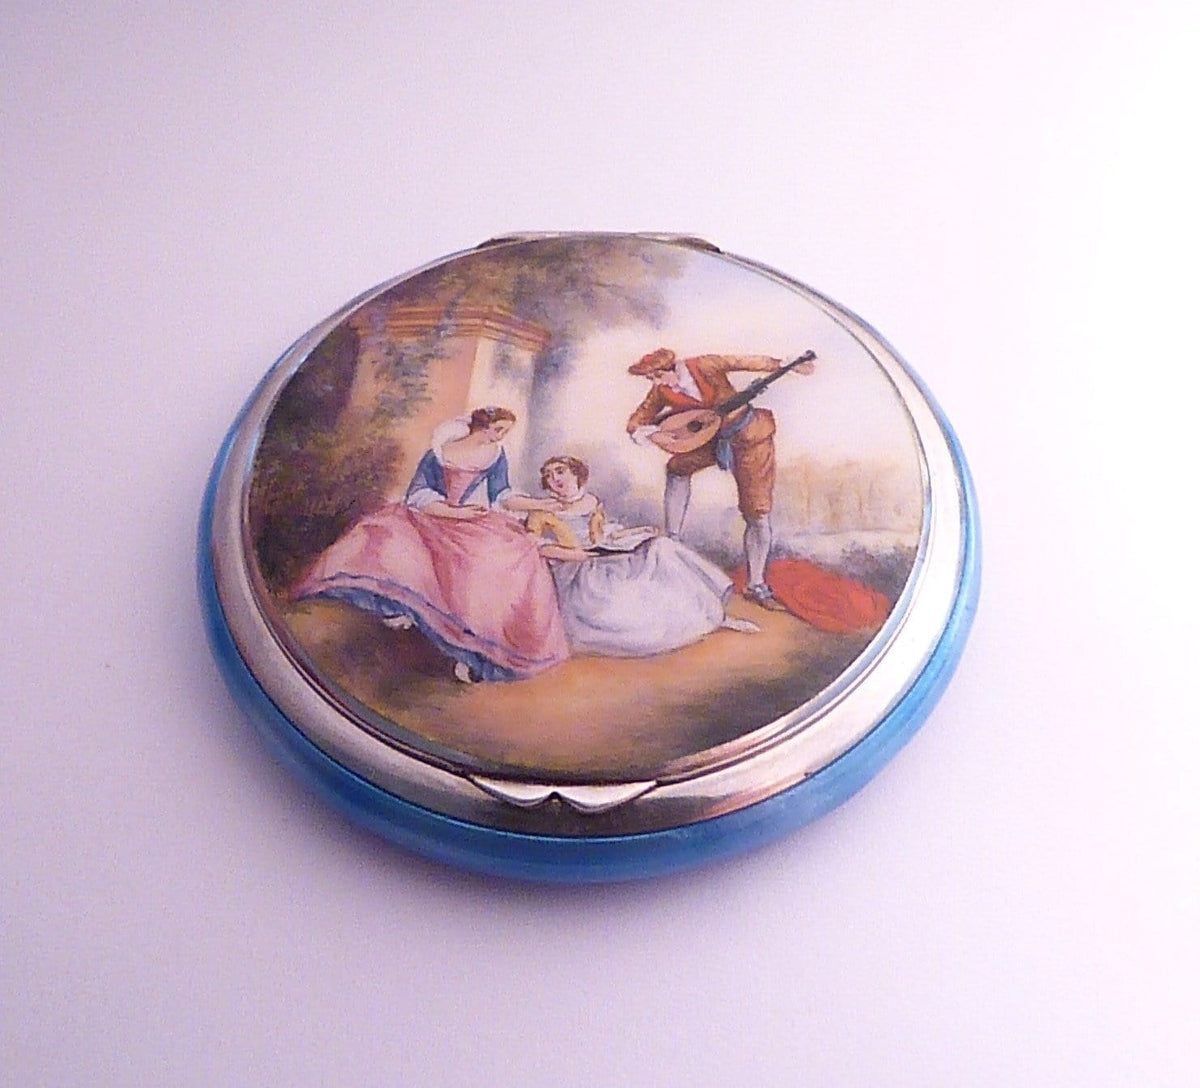 Antique silver wedding anniversary gifts for her 1920s sterling silver Austrian enameled compact mirror - The Vintage Compact Shop